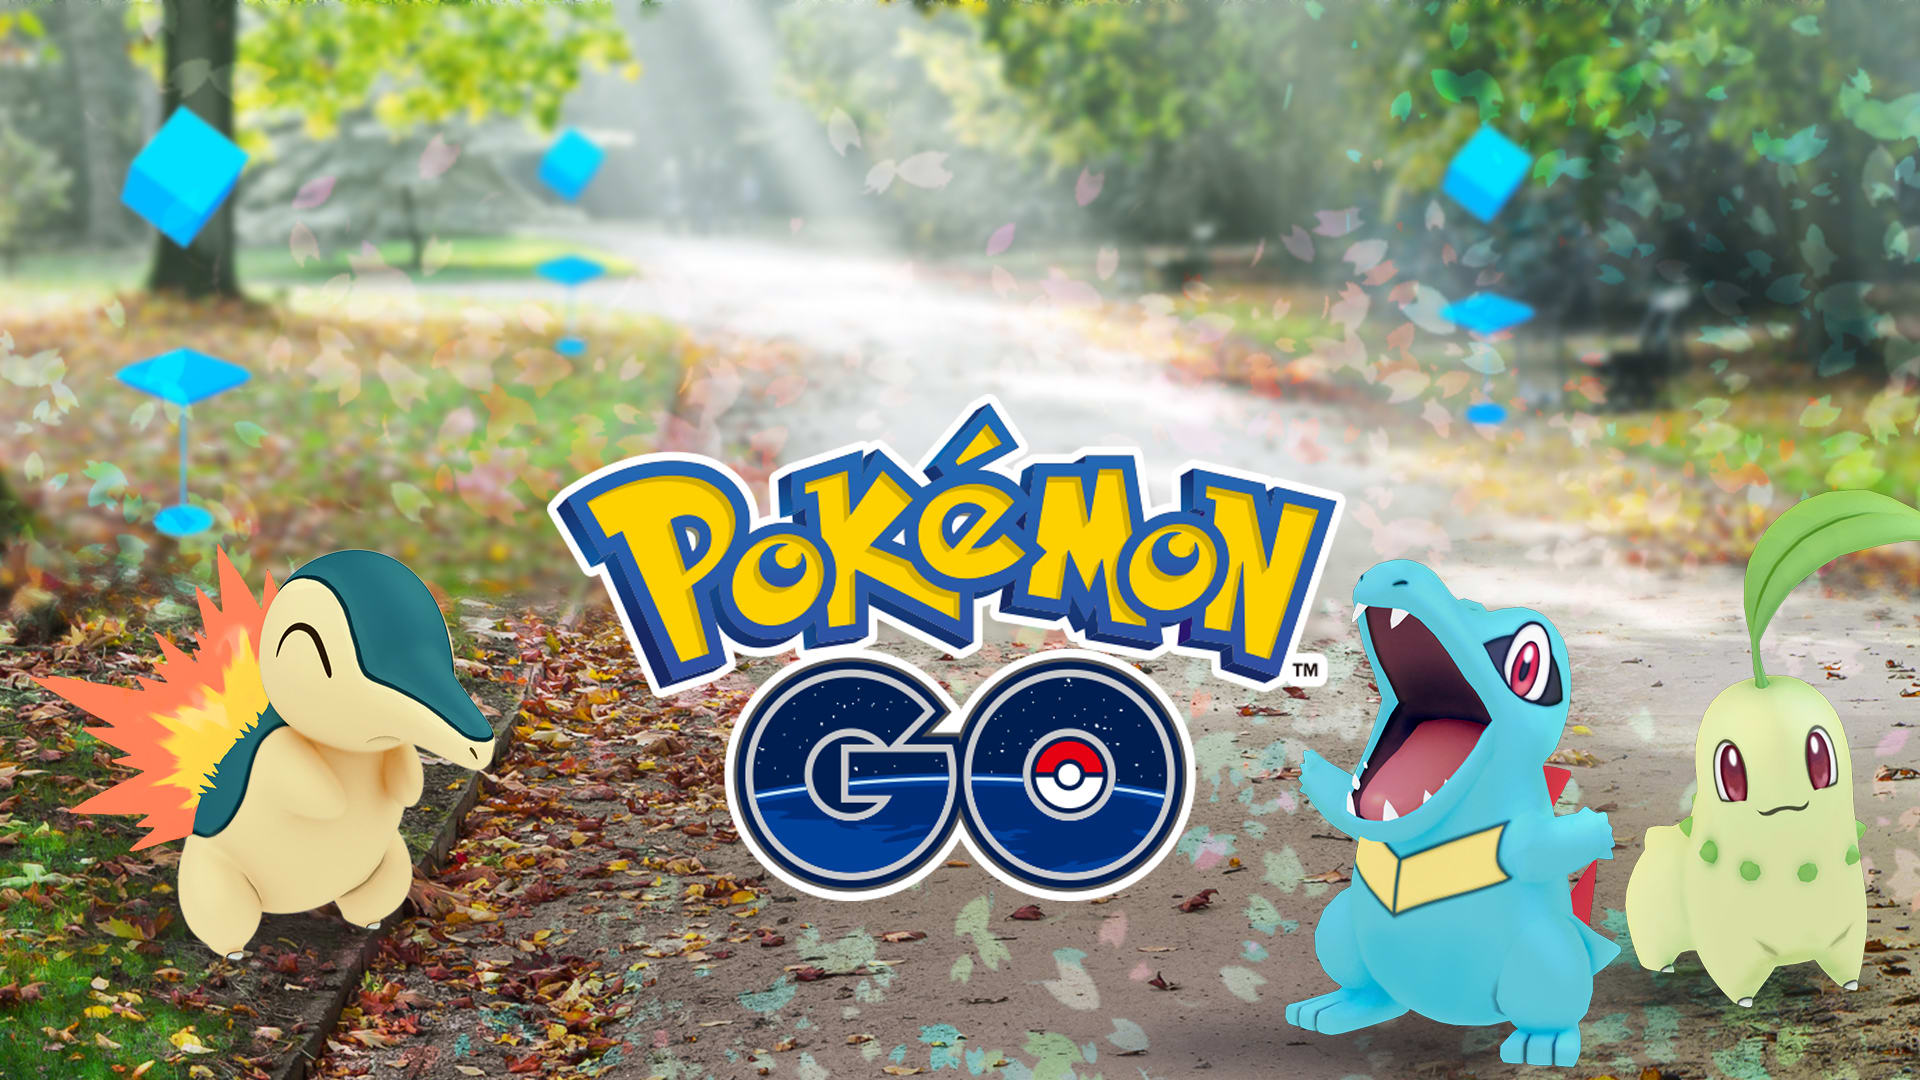 Latest Pokemon GO news is here for those who might have missed a bunch of stuff recently.